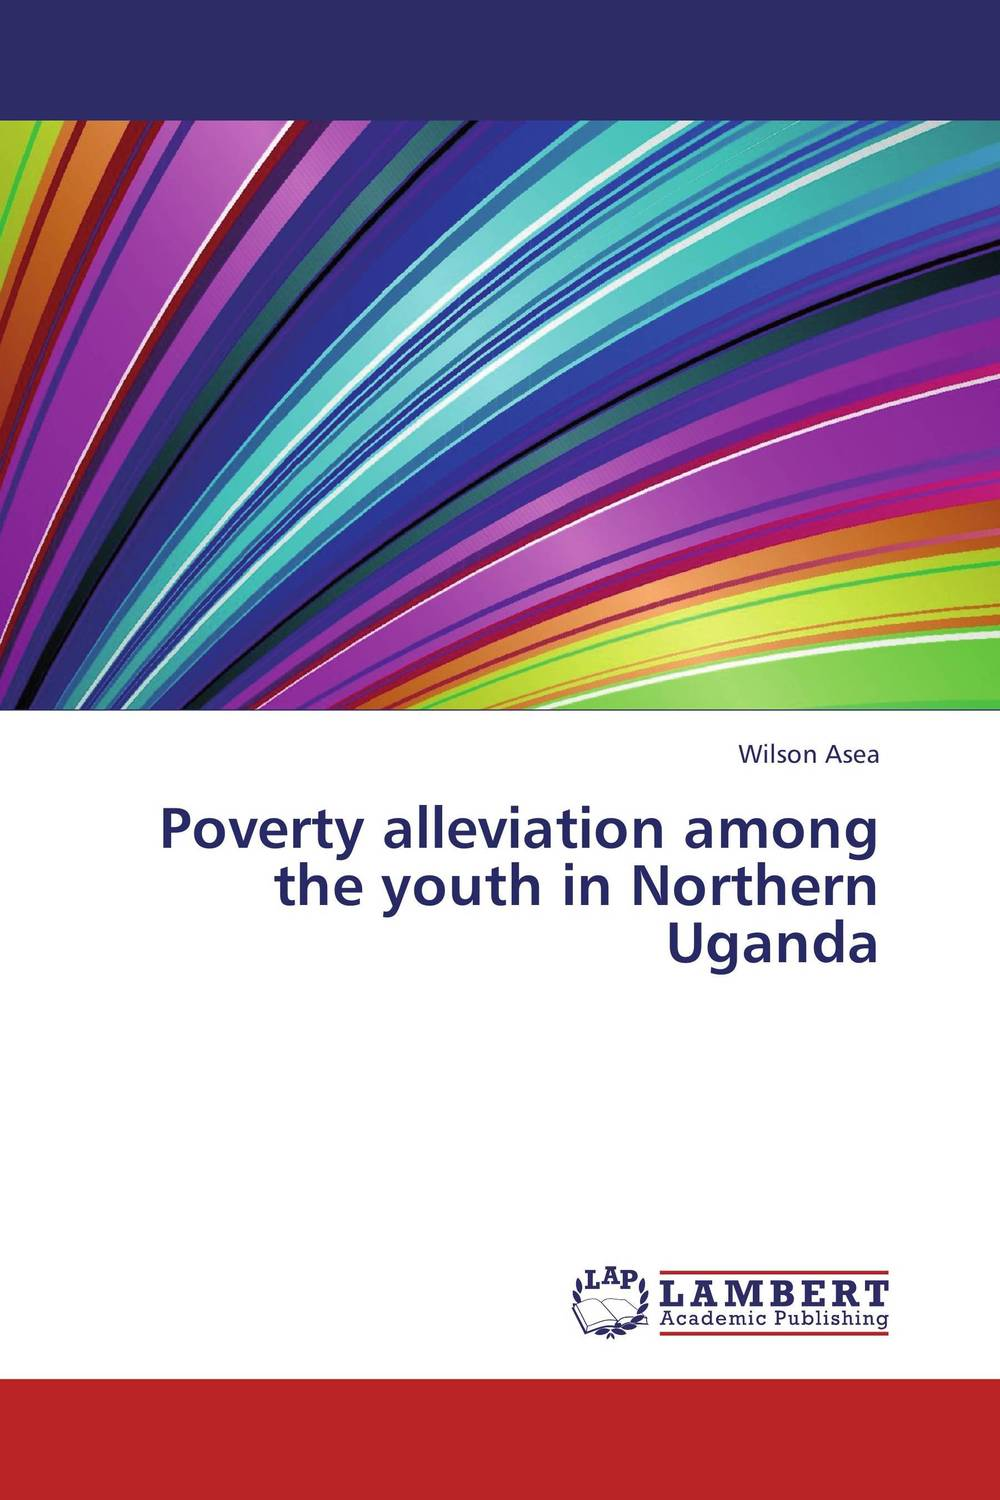 Poverty alleviation among the youth in Northern Uganda role of ict in rural poverty alleviation